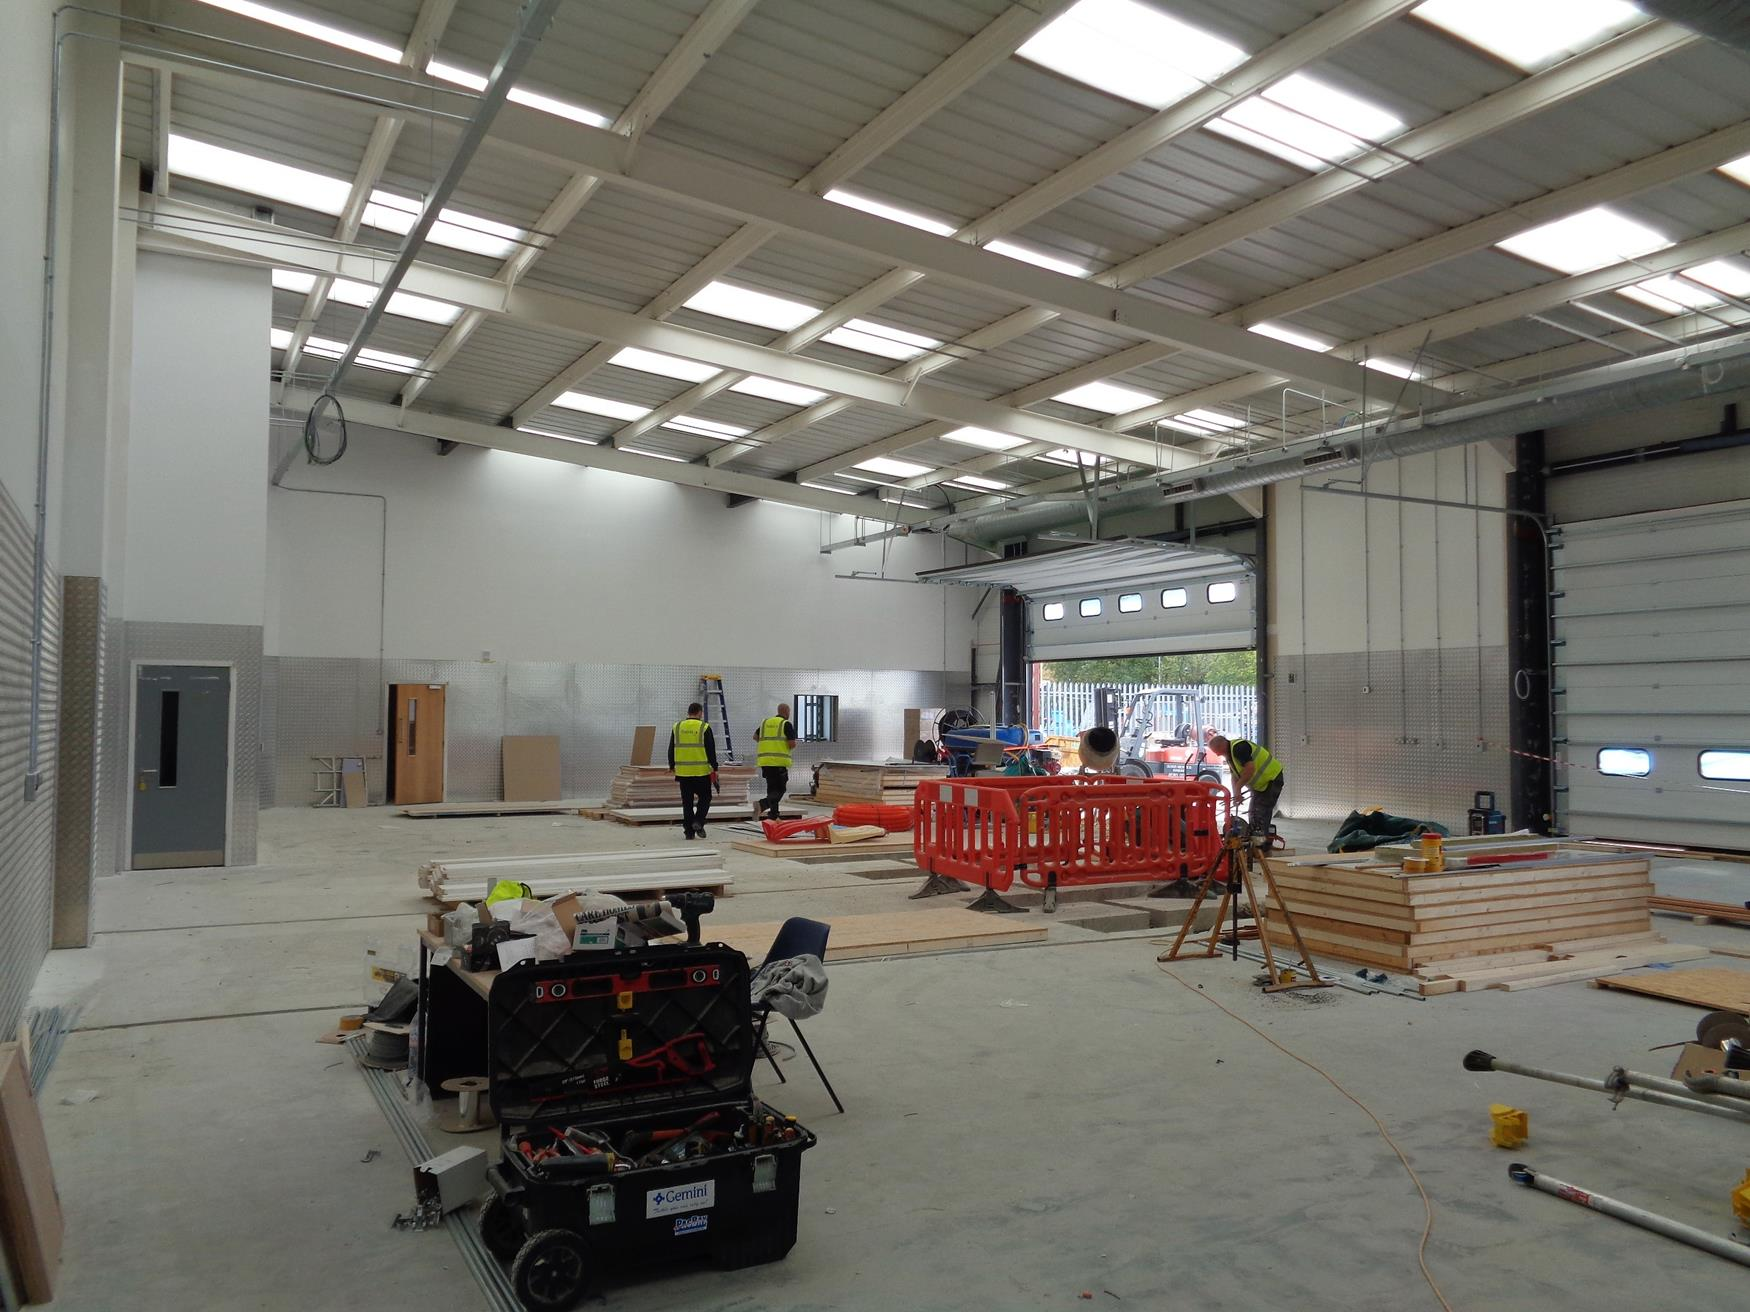 Ceiling and flooring in new car workshop